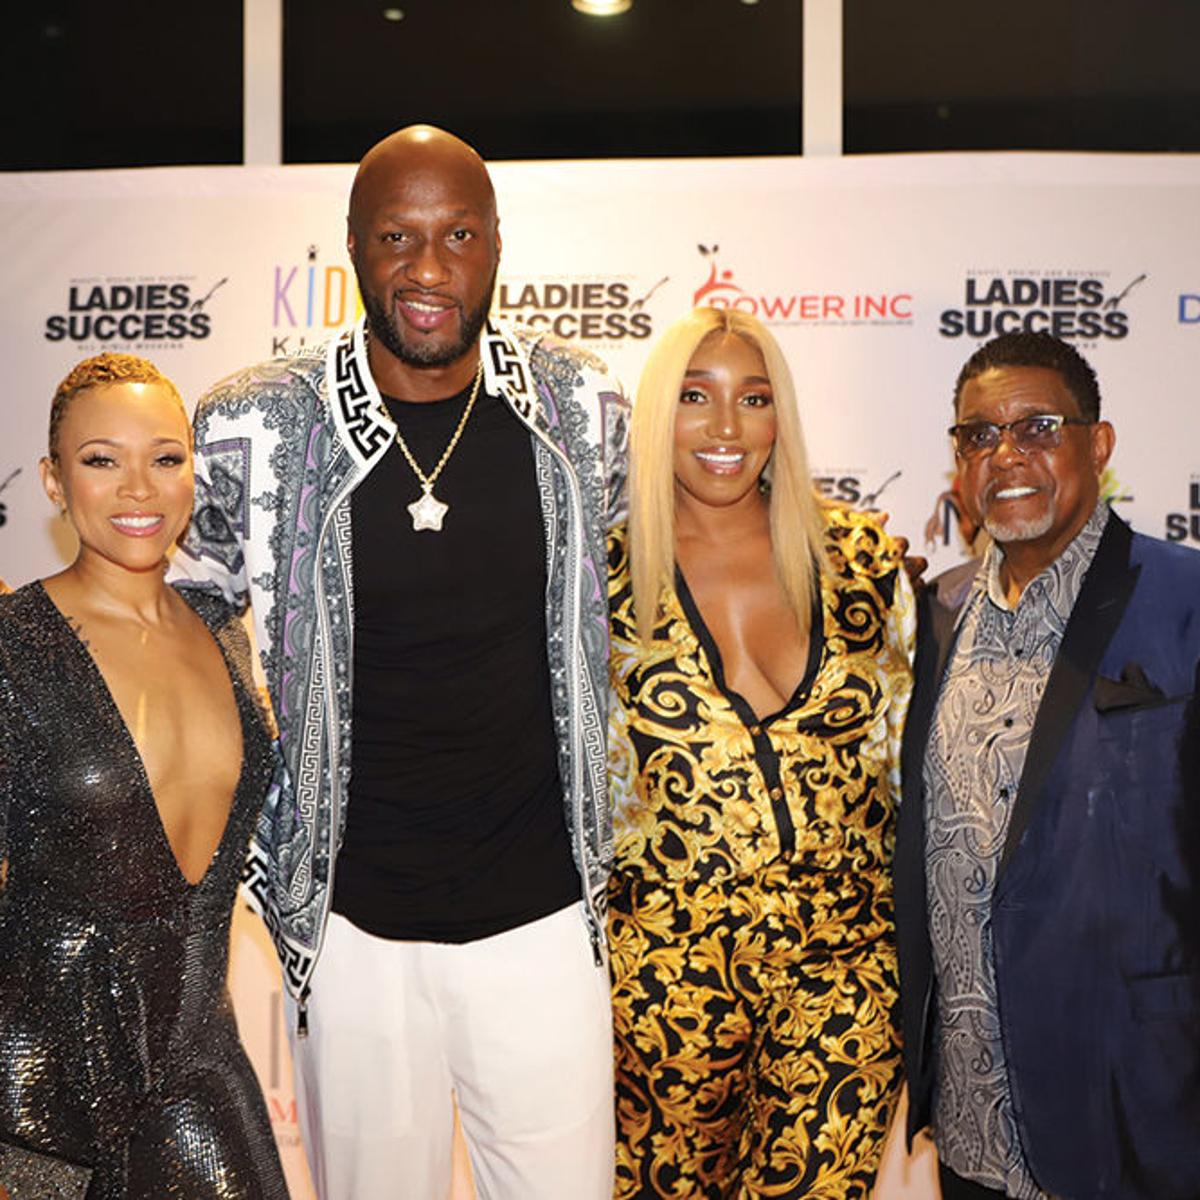 nene-leakes-was-impressed-by-the-support-she-received-for-her-business